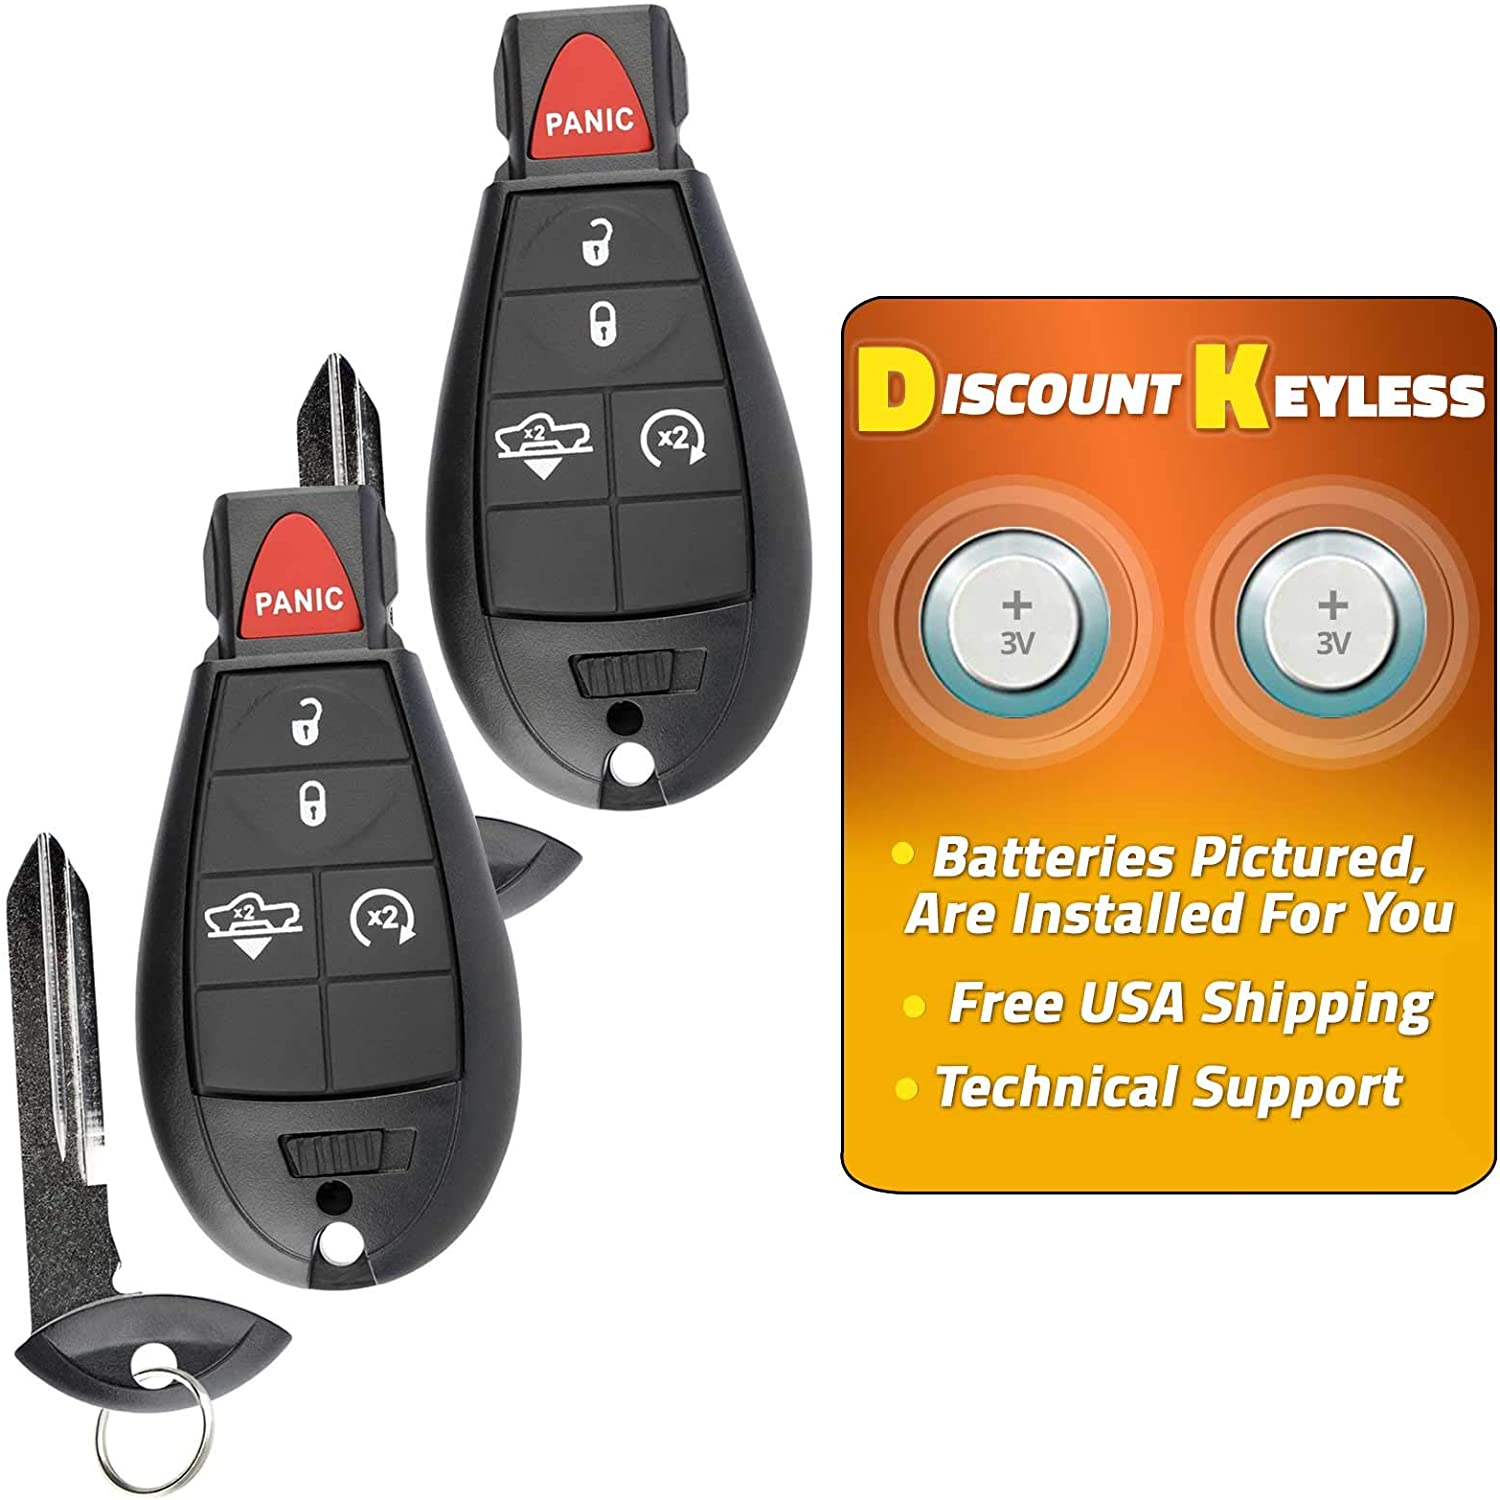 68159654 For 15-17 Ram 1500 With Air Suspension Keyless Entry Remote Key Fob 5btn GQ4-53T